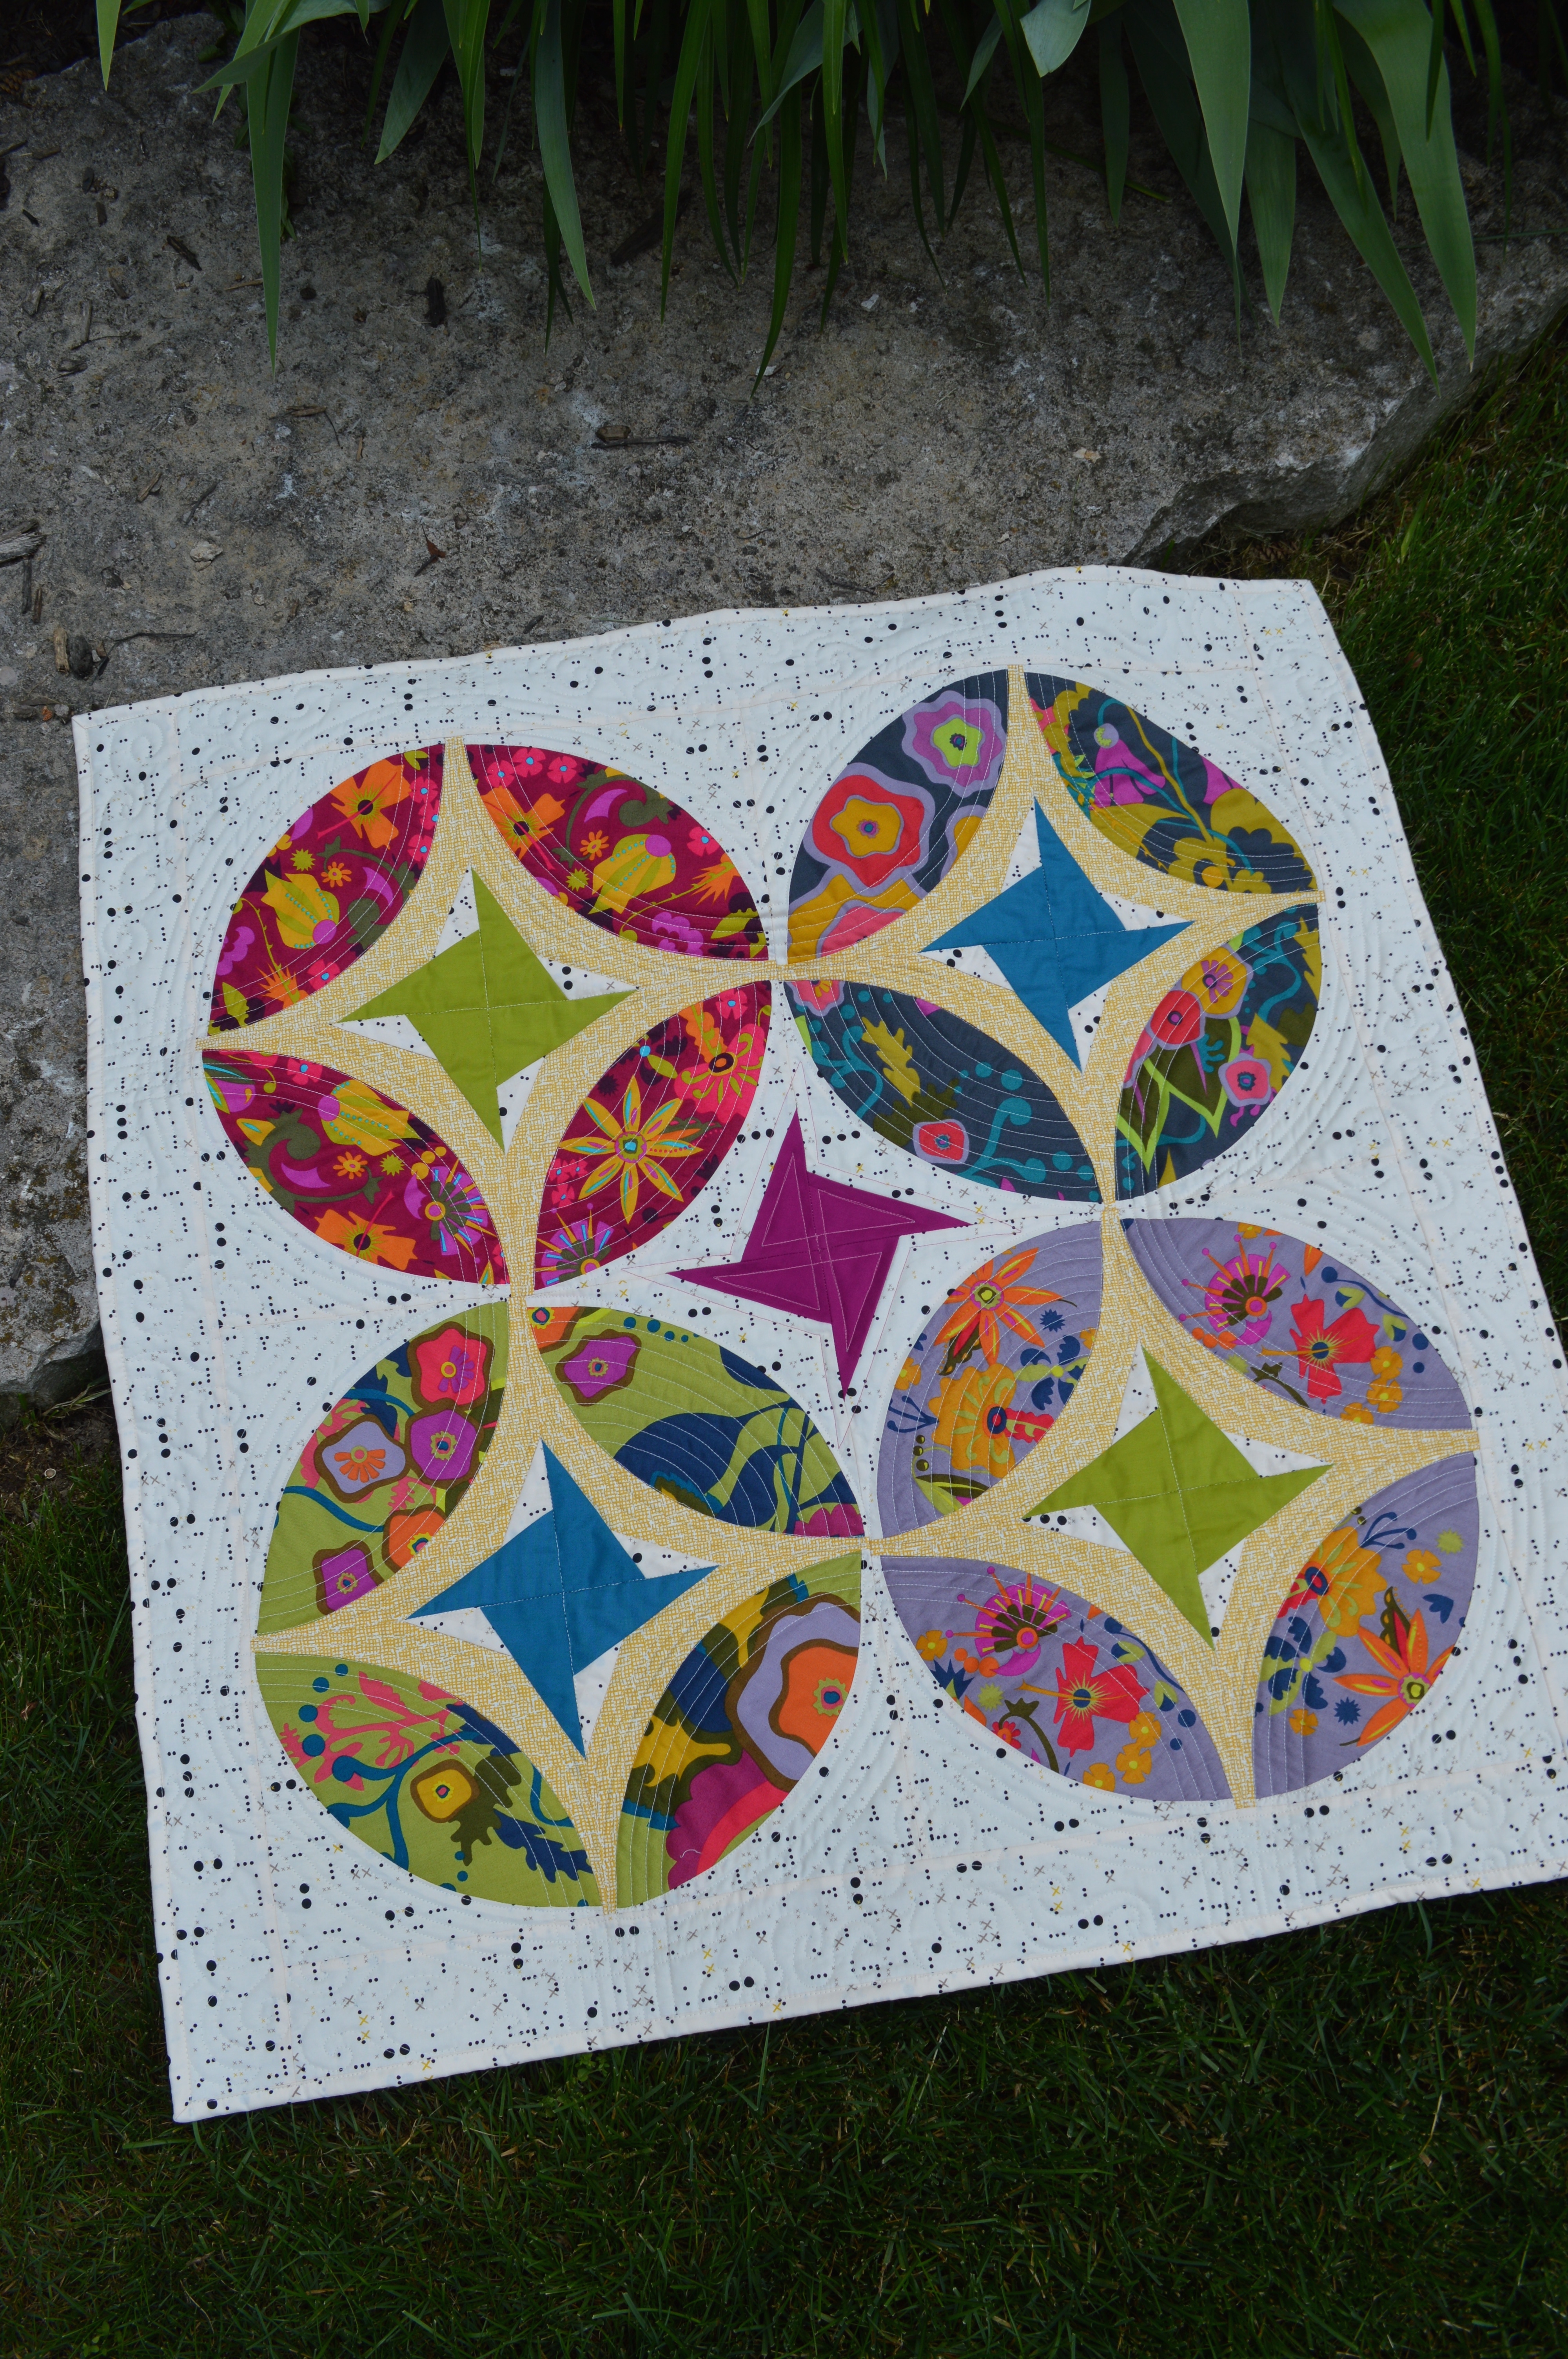 Eclipse quilt pattern, curved piecing mini quilt by Sharon McConnell